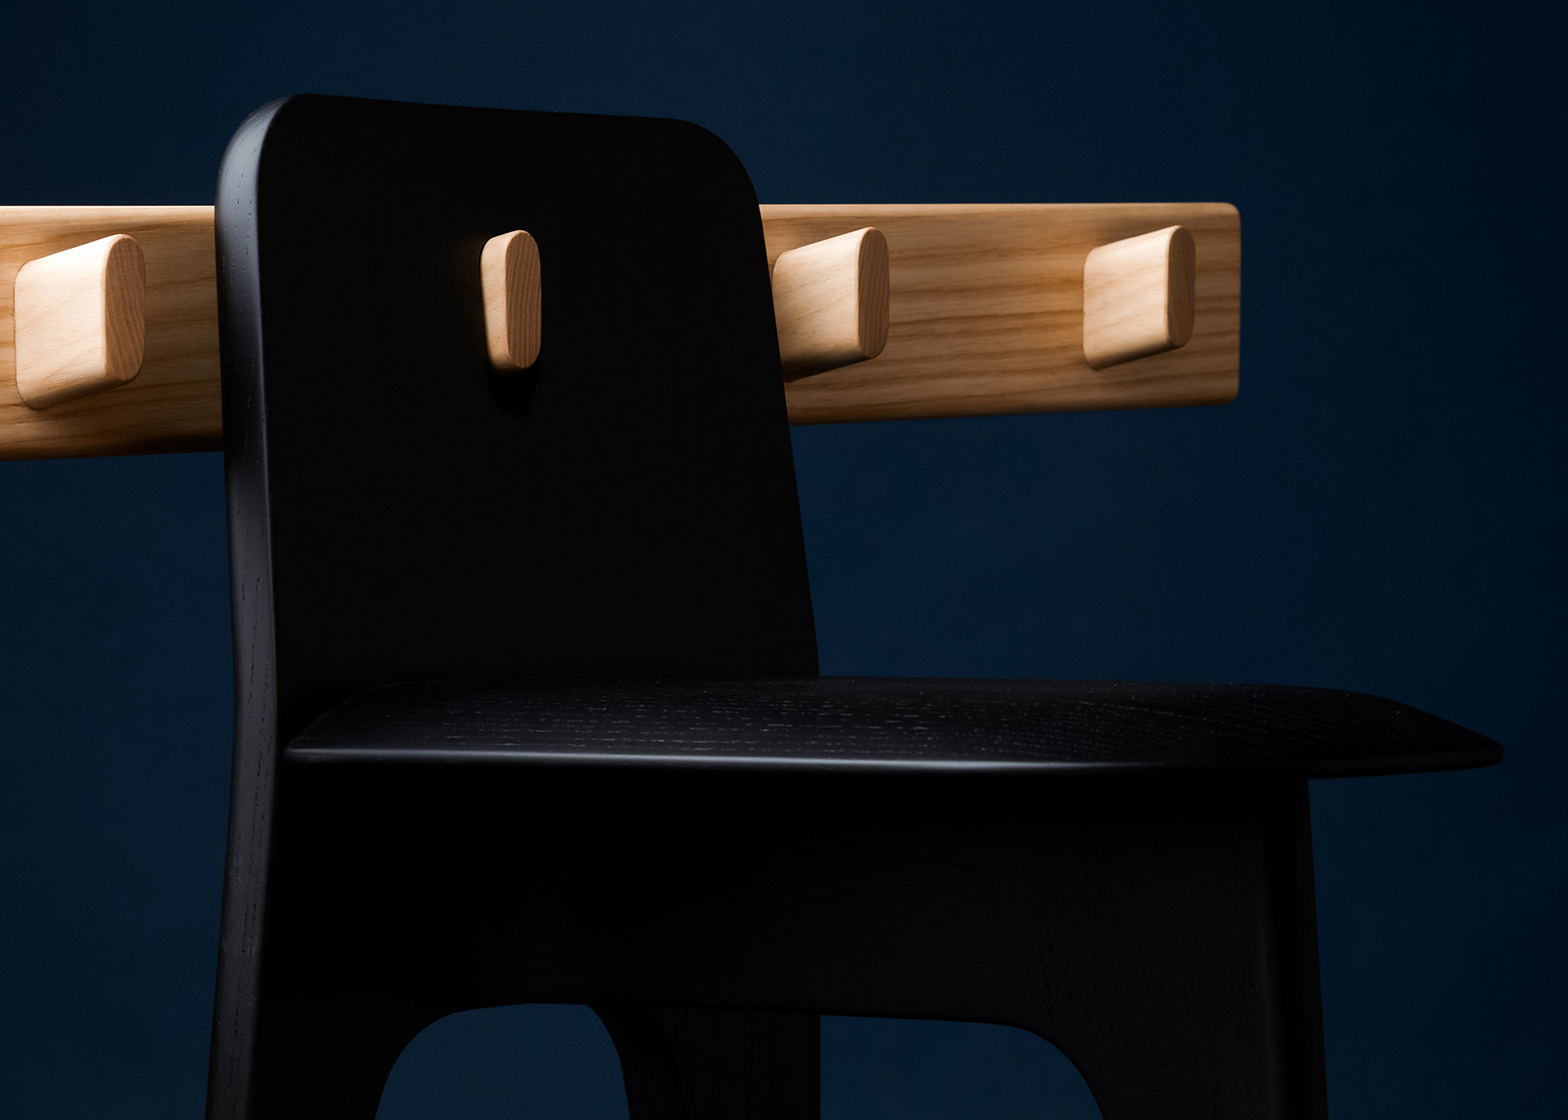 Gabriel Tan's Stove chair and Domino peg rail for Furnishing Utopia exhibition